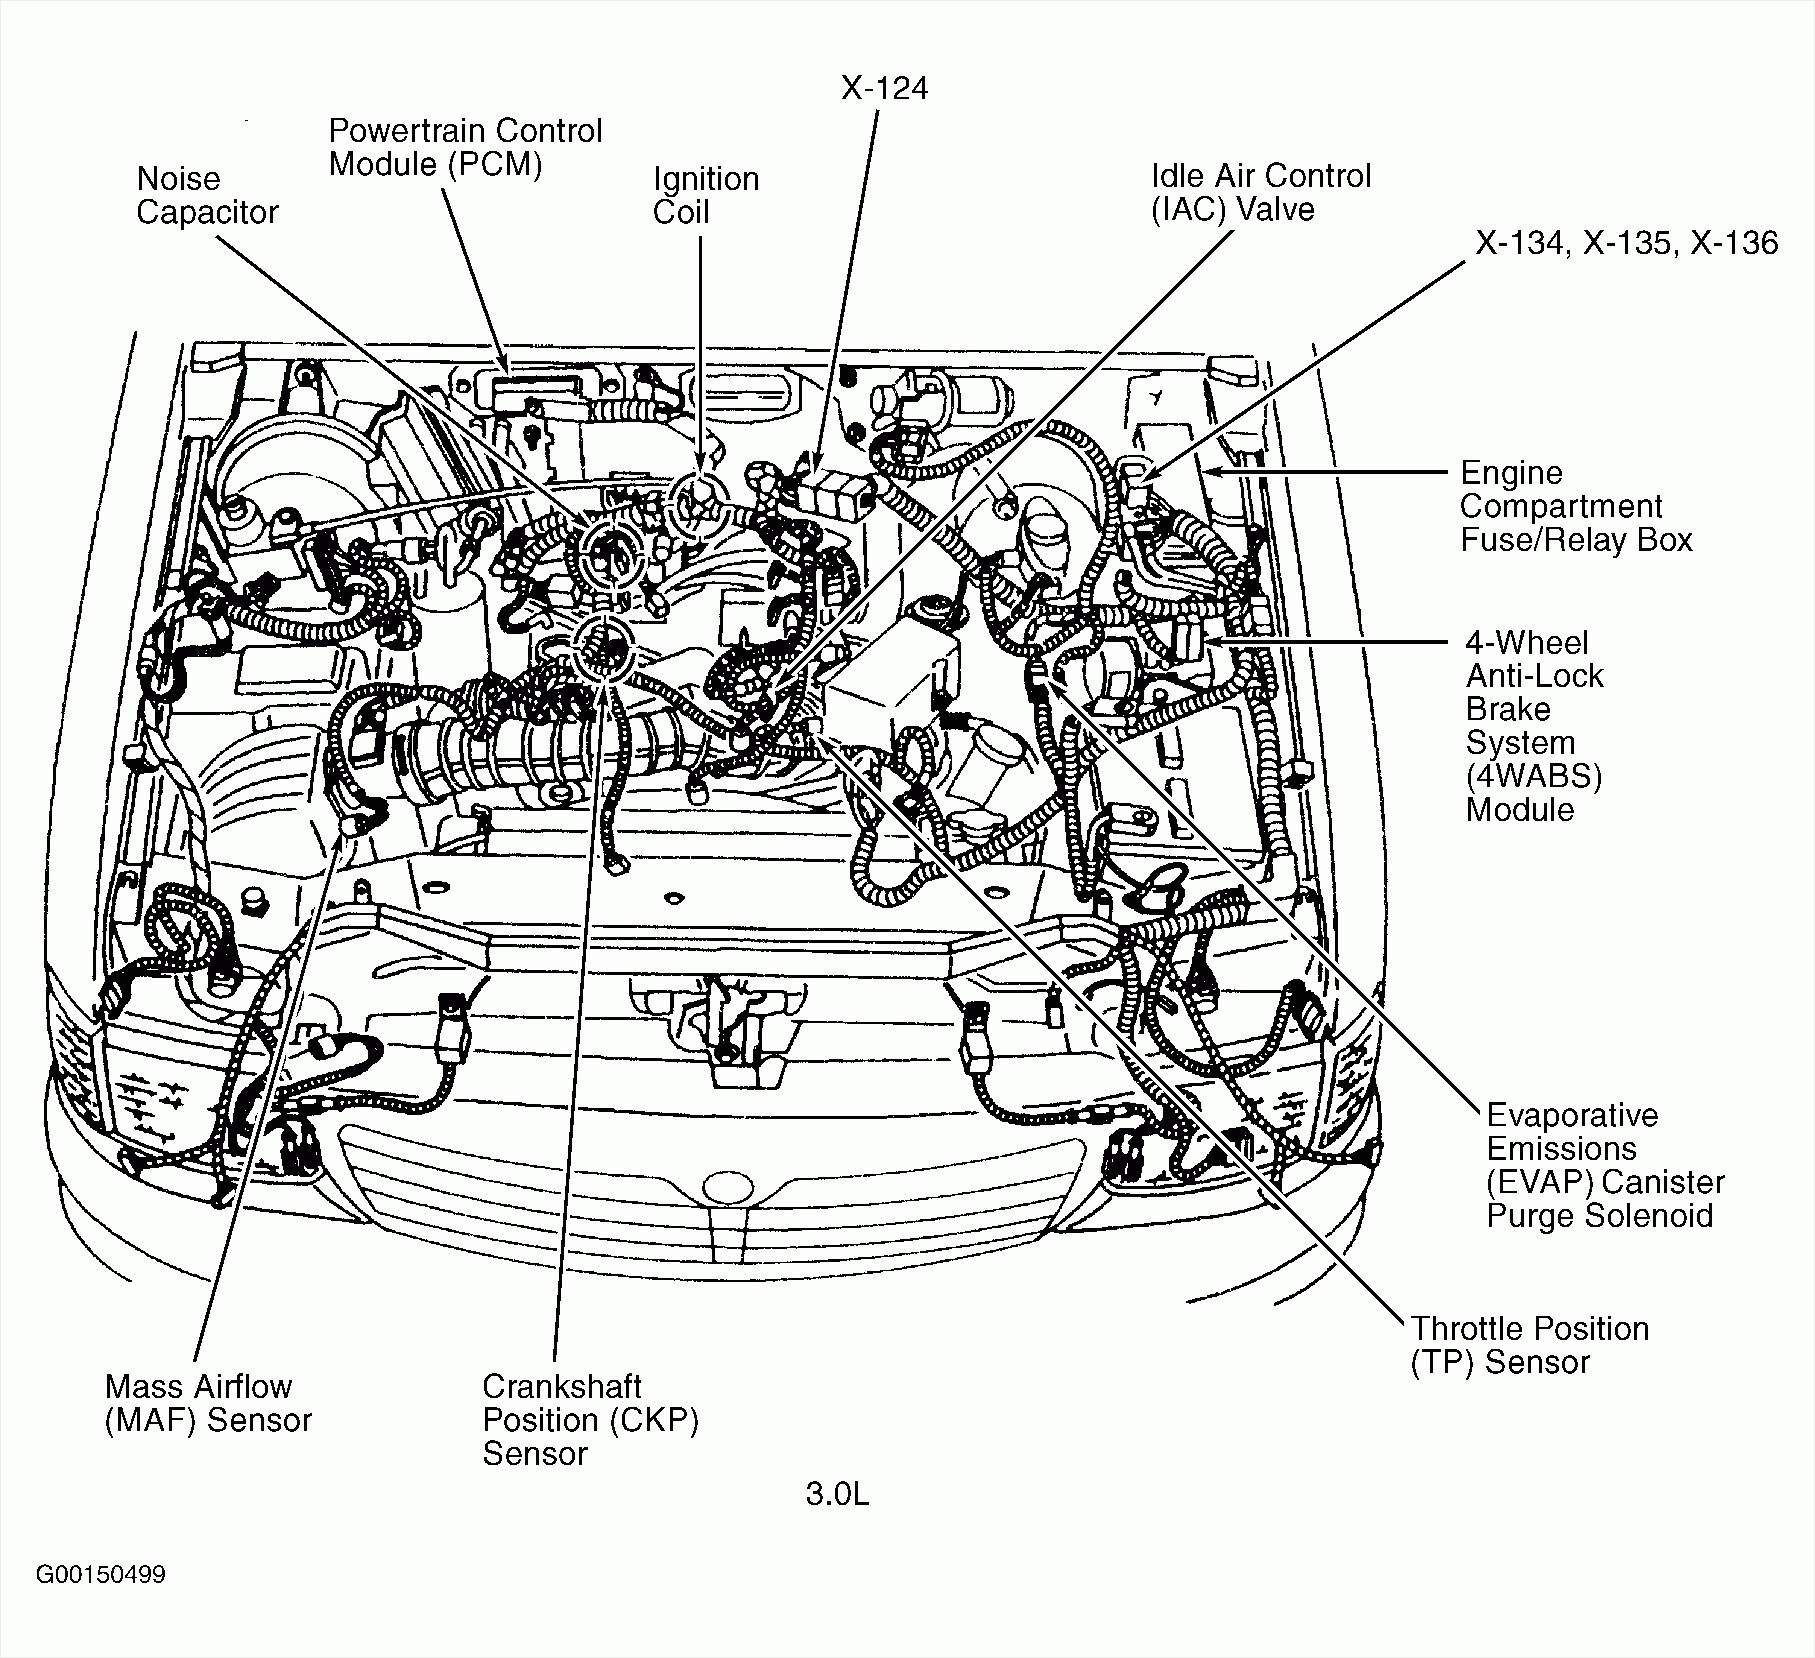 2002 3 8 Mustang Engine Diagram Reinvent Your Wiring Ford Ranger To 98 Mustangs Wire Data Schema U2022 Rh 45 32 206 240 Convertible 1998 V6